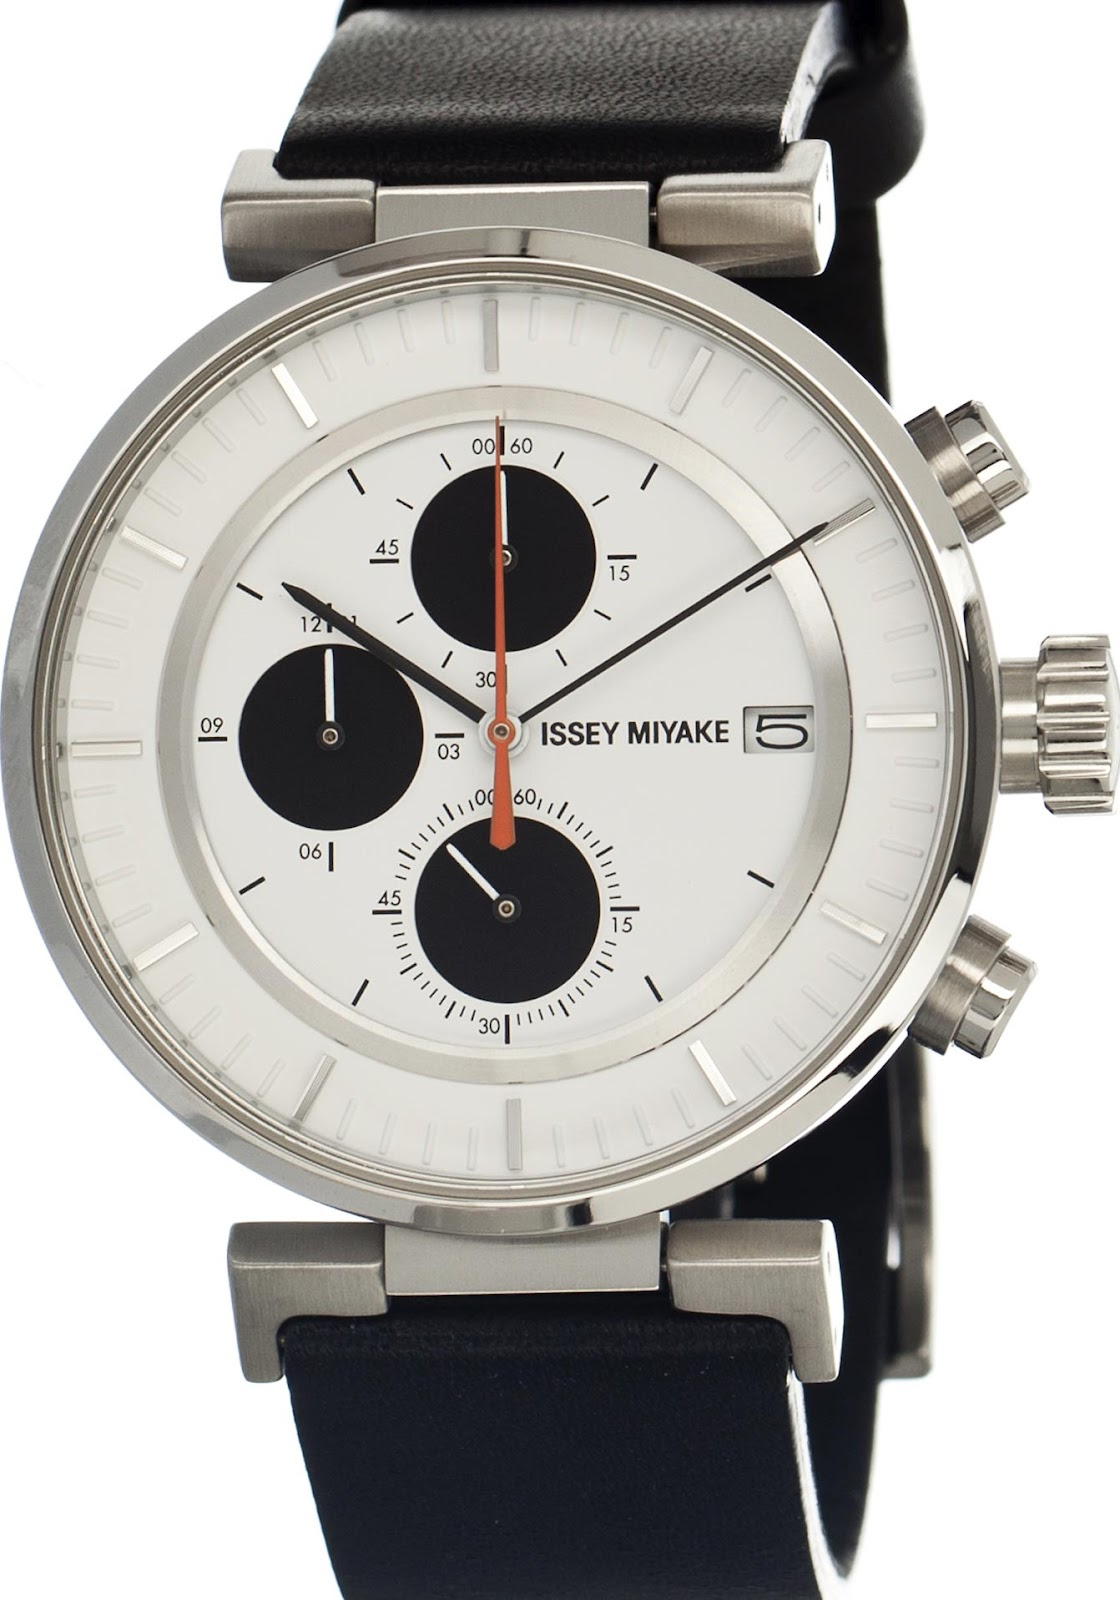 Watchismo times new issey miyake w chronograph available for Watchismo